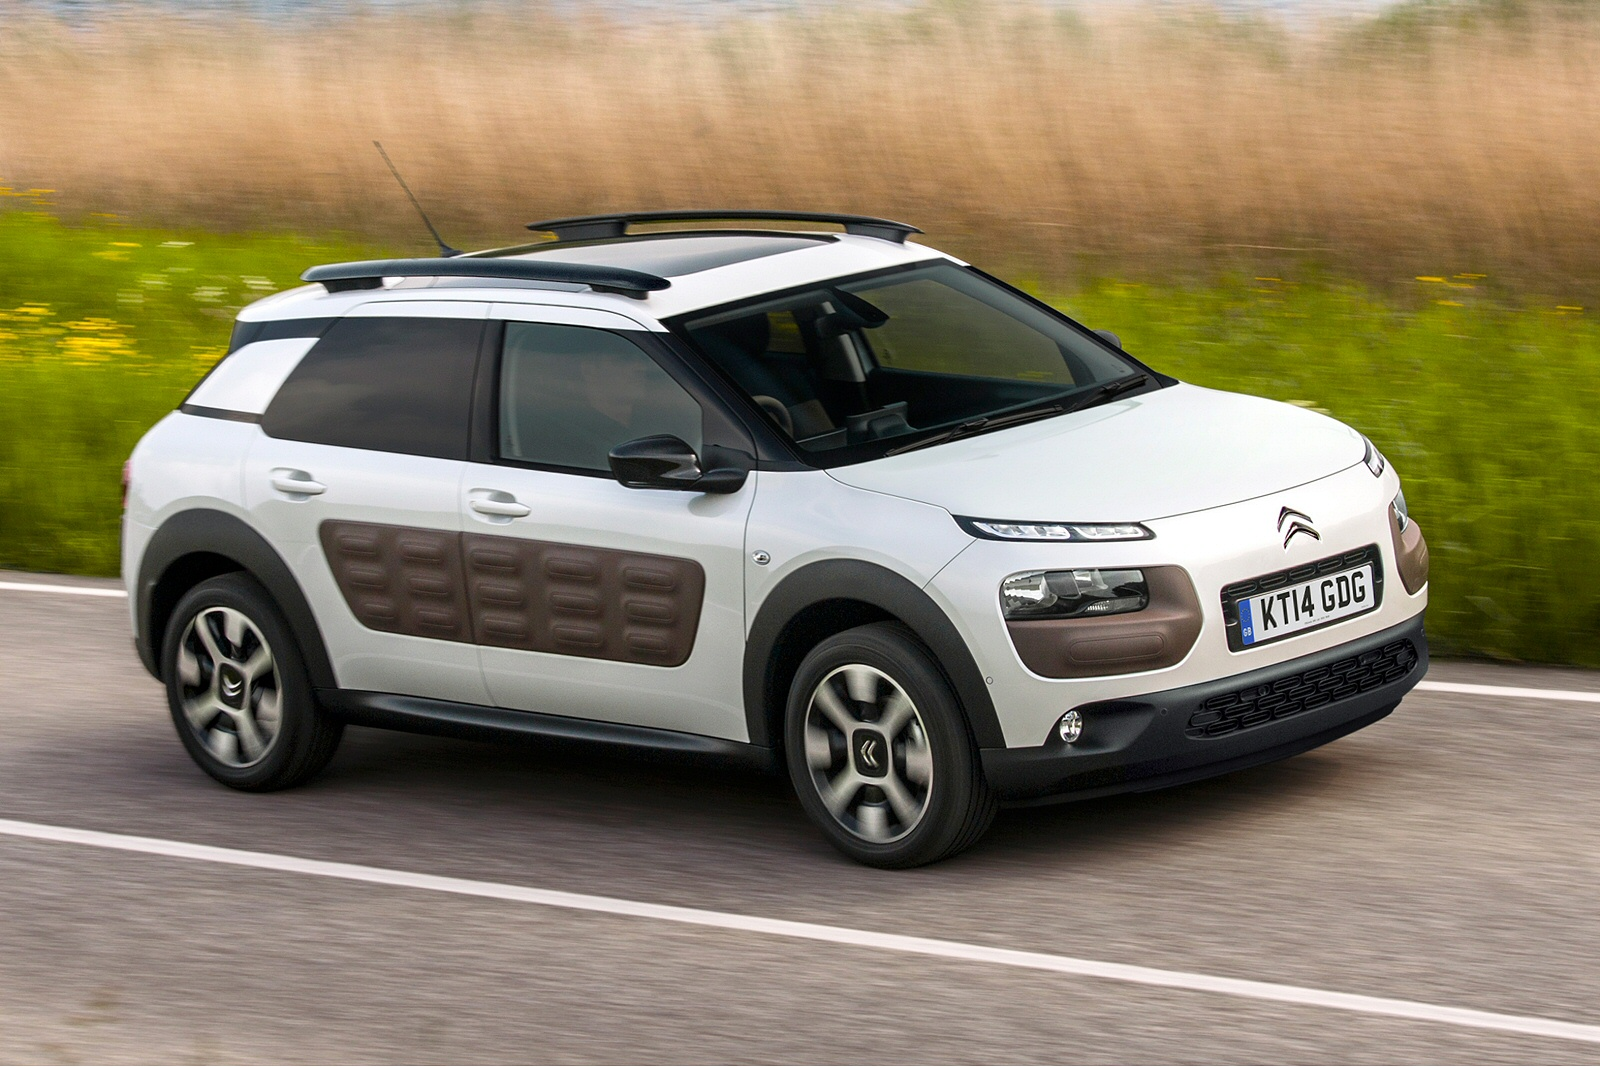 citroen c4 cactus 1 2 puretech 75 hp. Black Bedroom Furniture Sets. Home Design Ideas